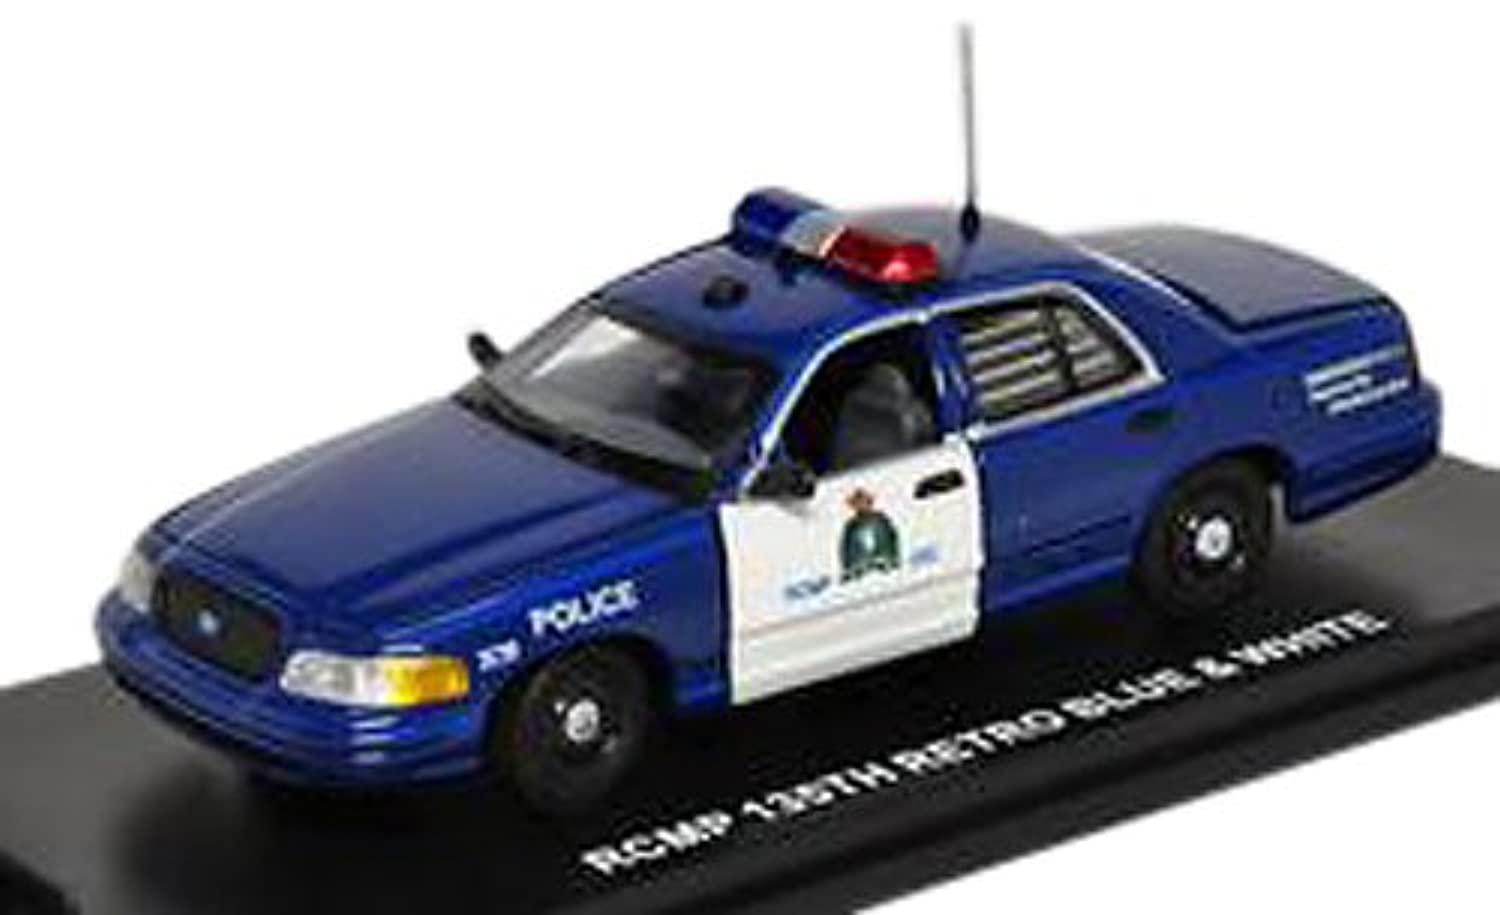 FIRST RESPONSE 1/43 Ford Crown Victoria RCMP (Retro Blue/White) 完成品